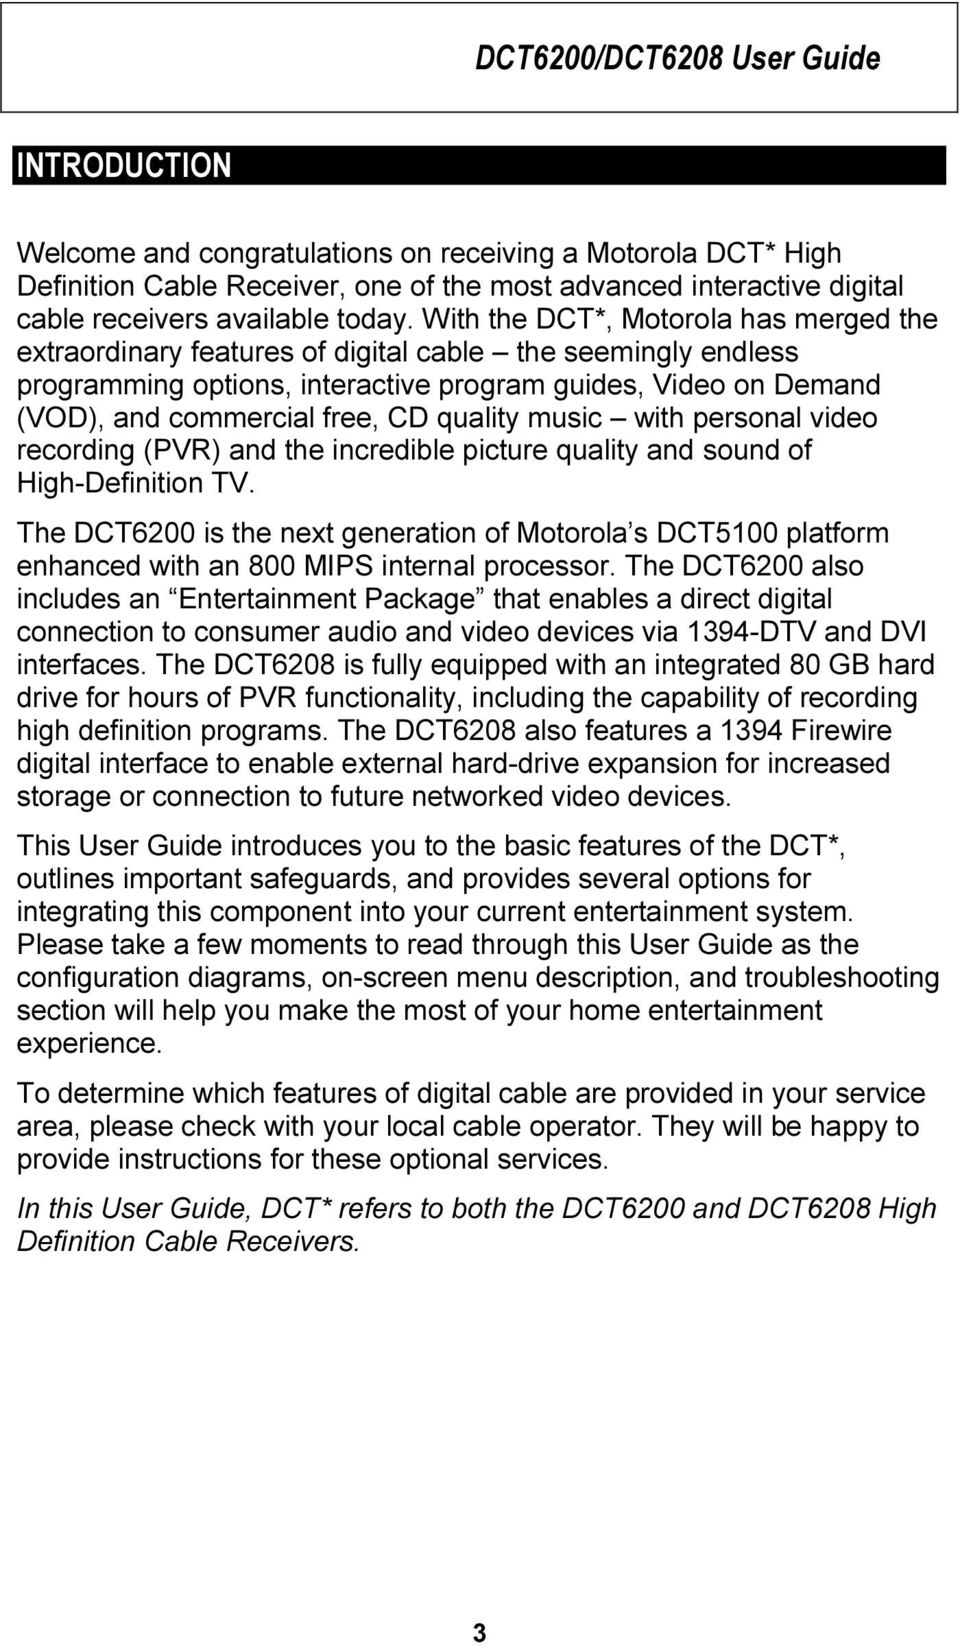 With the DCT*, Motorola has merged the extraordinary features of digital cable the seemingly endless programming options, interactive program guides, Video on Demand (VOD), and commercial free, CD